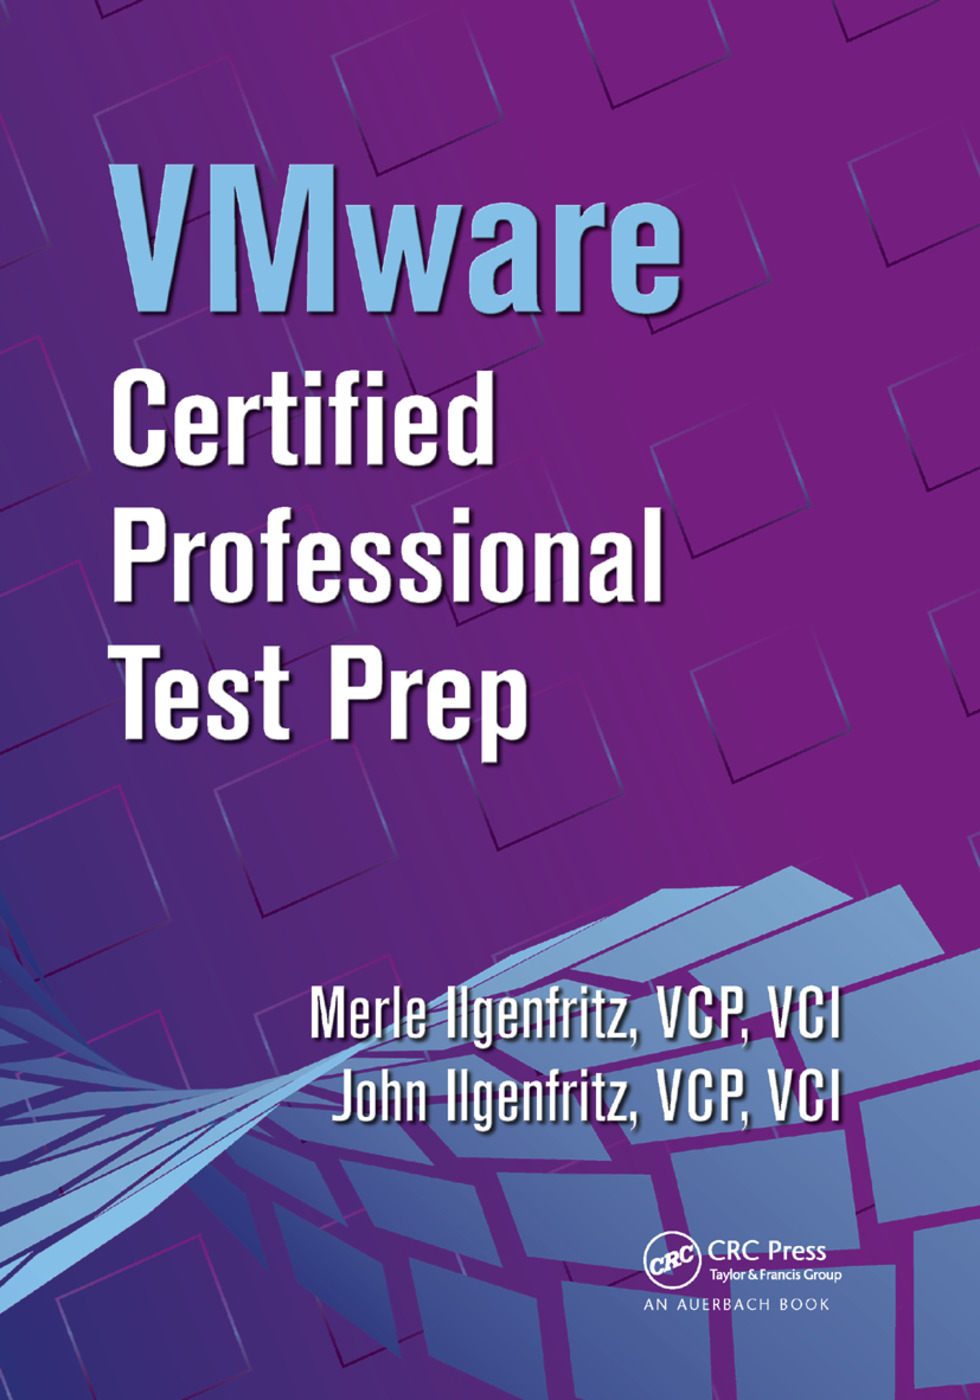 VMware Certified Professional Test Prep: 1st Edition (Paperback) book cover